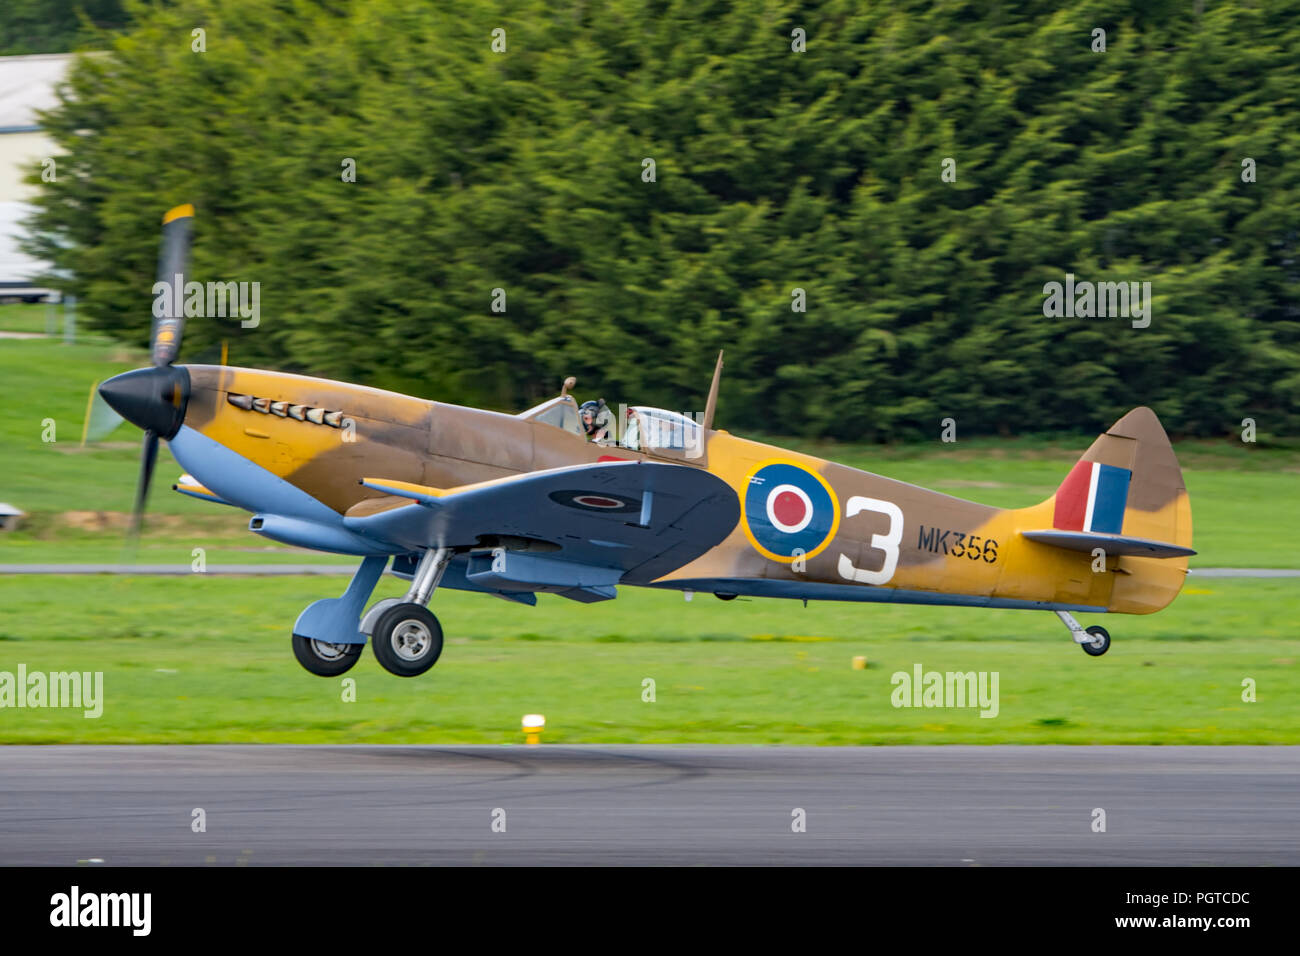 RAF BBMF Supermarine Spitfire fighter aircraft taking off from Dunsfold Aerodrome, UK during the Wings & Wheels Airshow on the 25th August 2018. - Stock Image